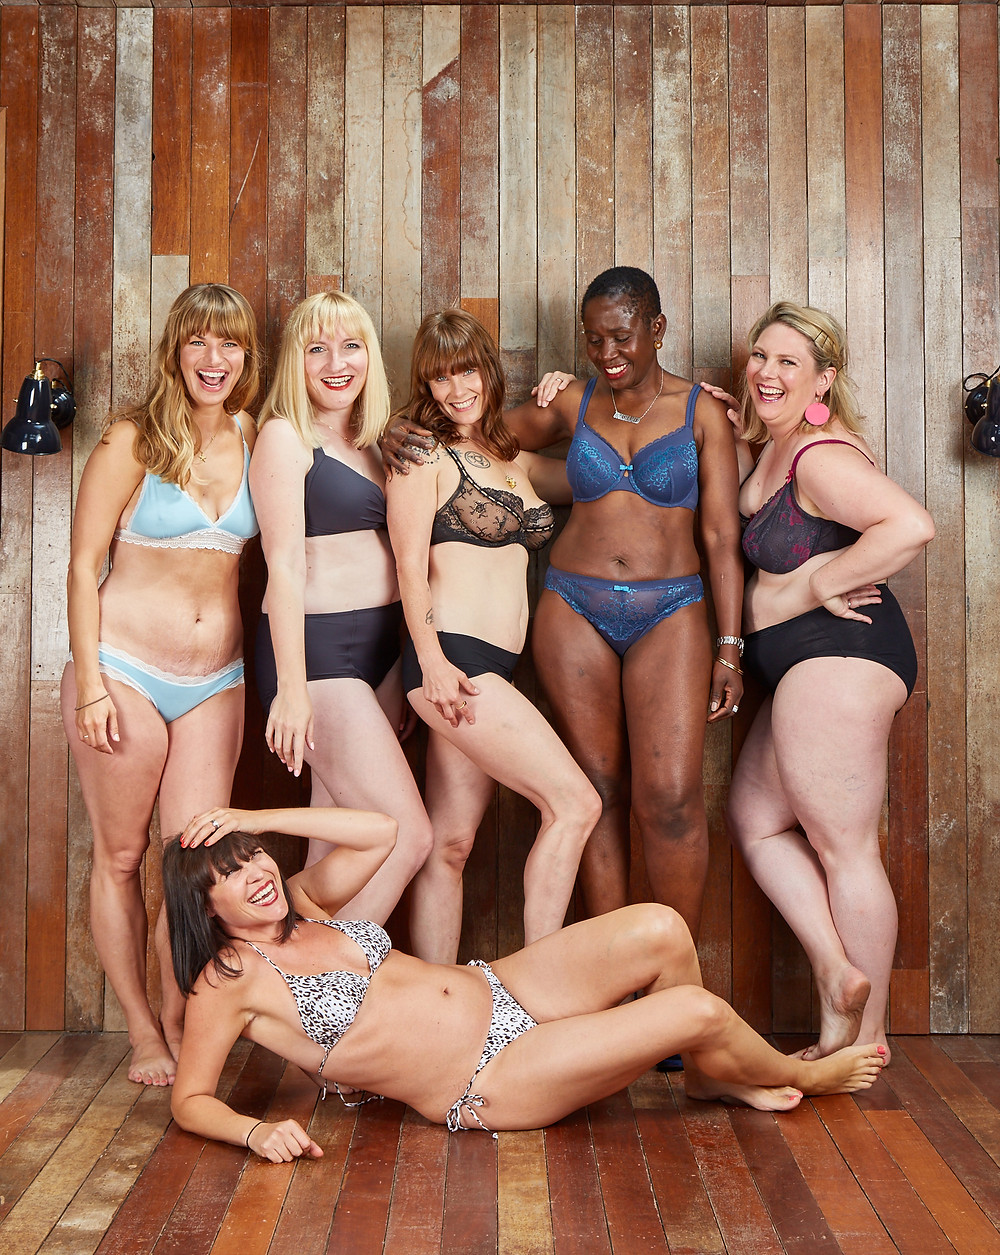 a pictures of mums in their underwear for the warrior woman project in partnership with dove organised by Style Me Sunday